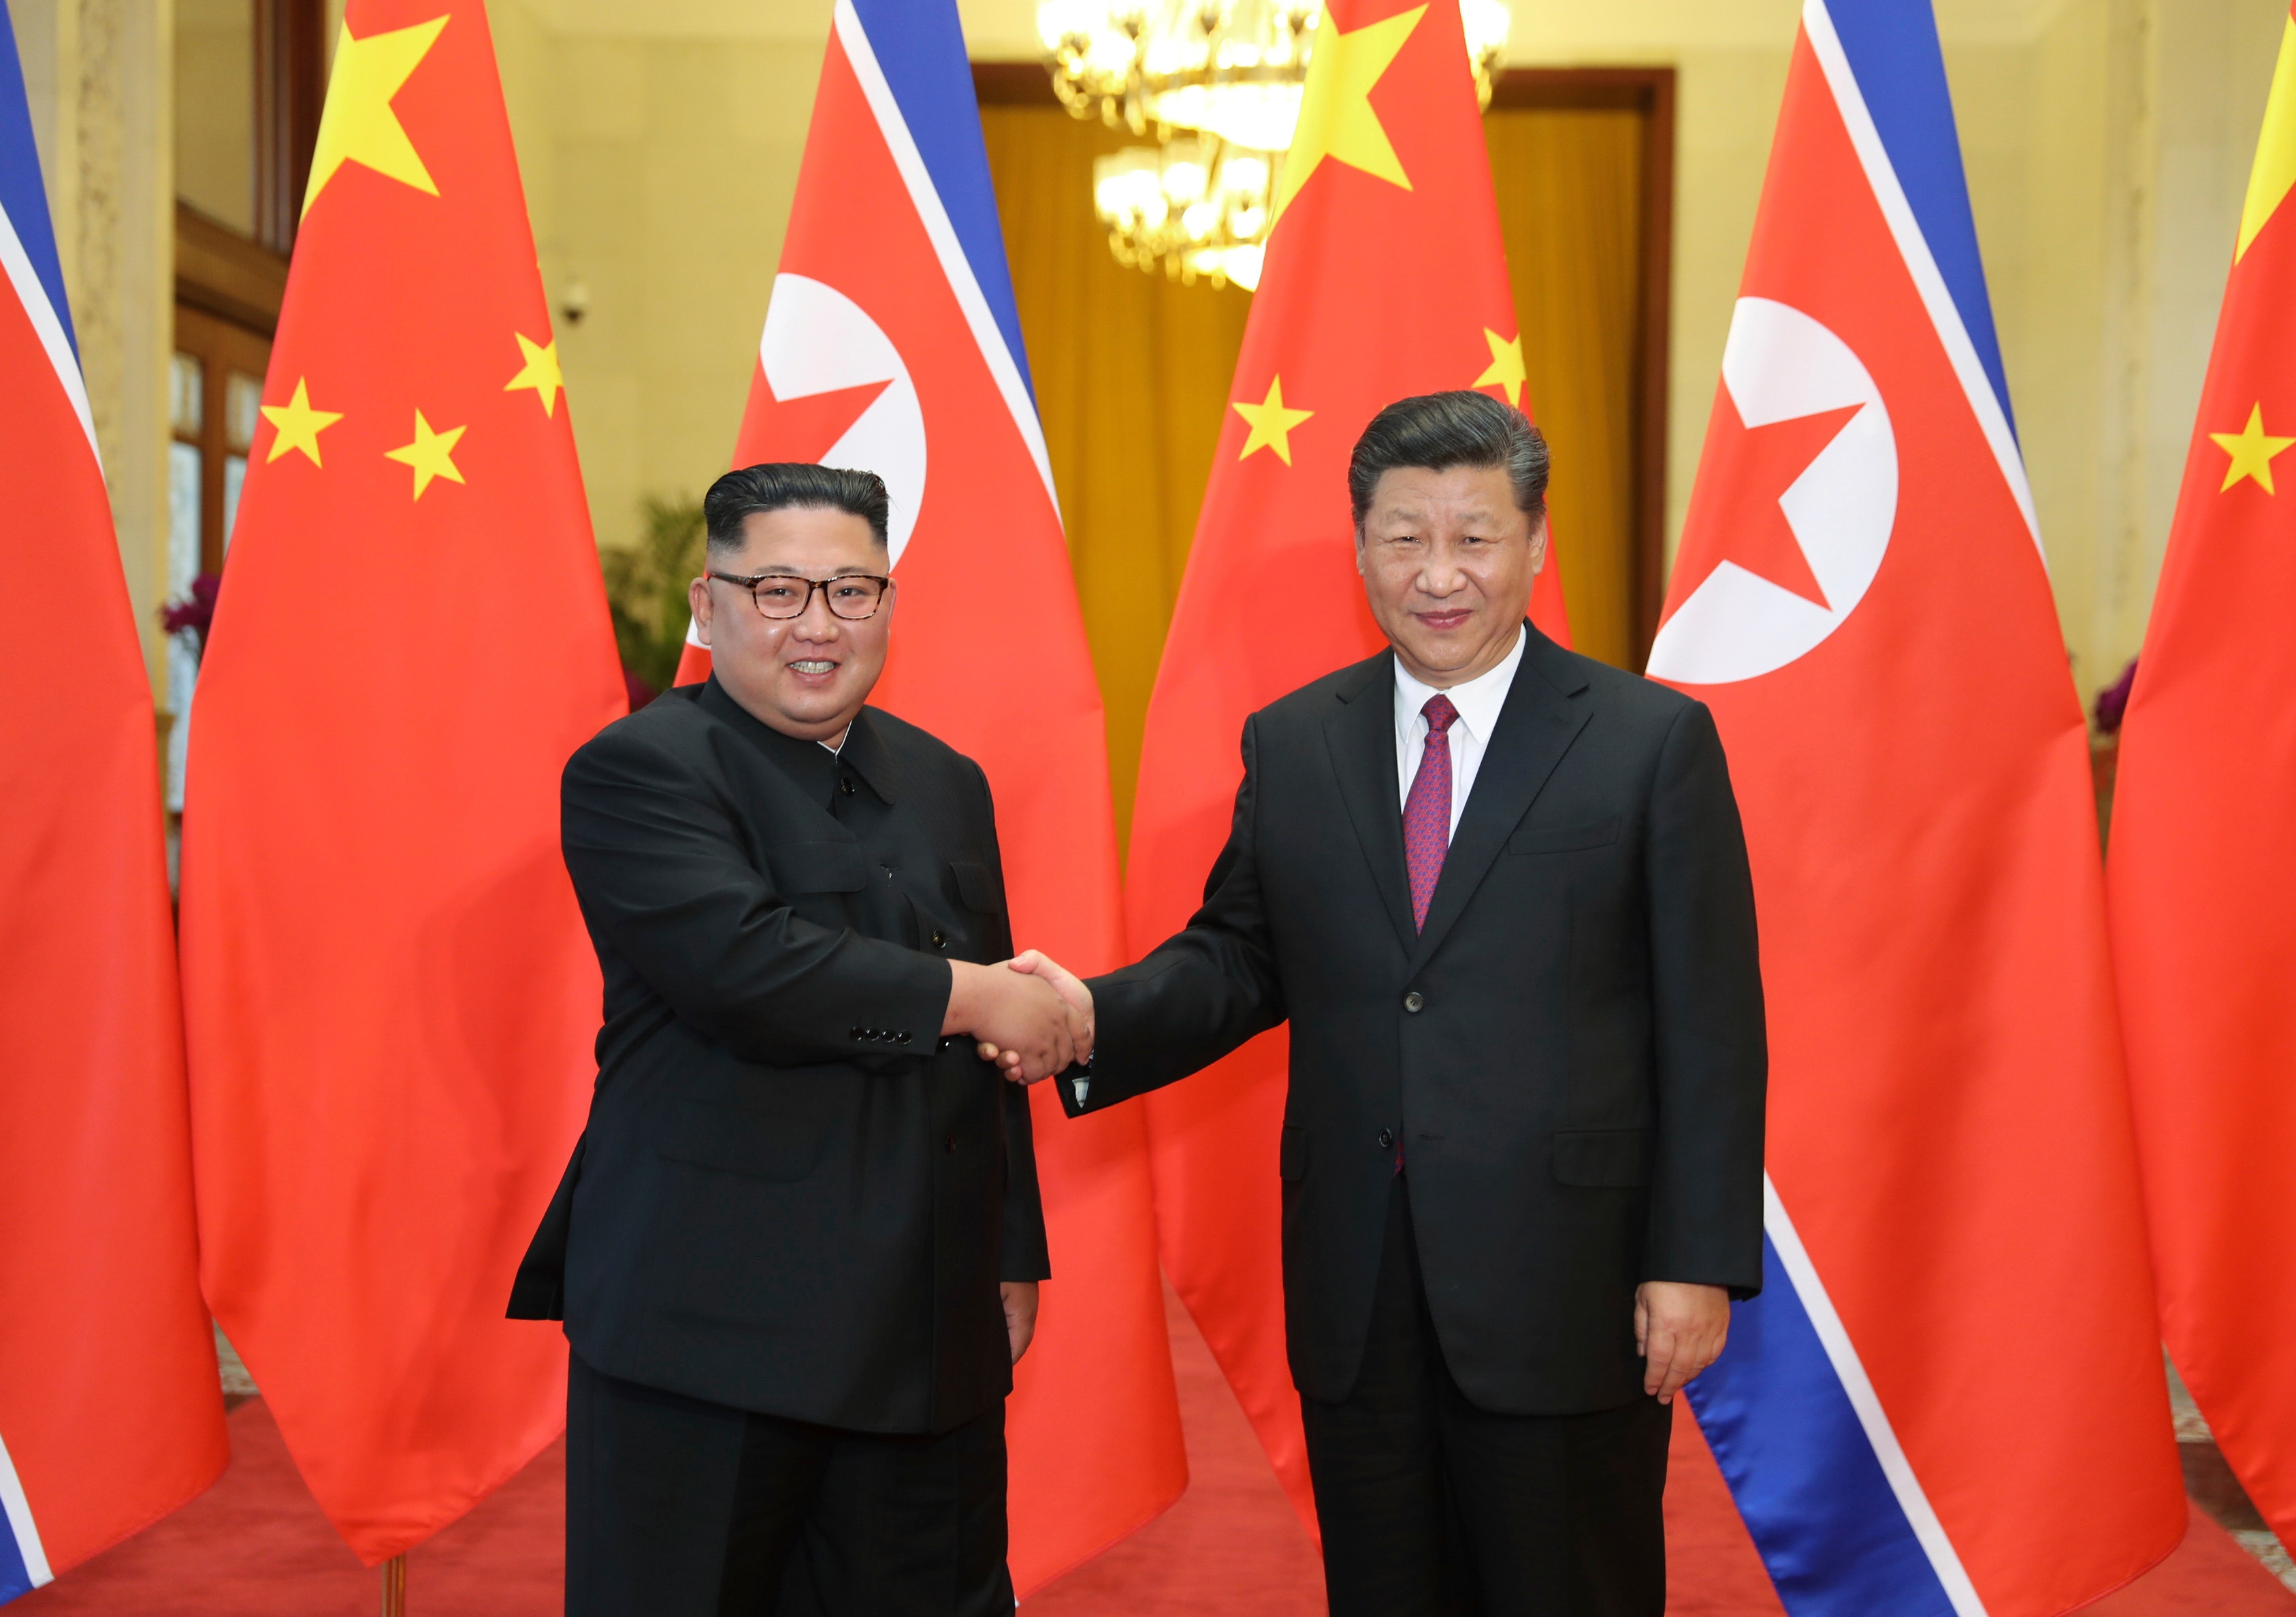 In 2018, Chinese President Xi Jinping poses with North Korean leader Kim Jong-un during a welcome ceremony at the Great Hall of the People in Beijing.